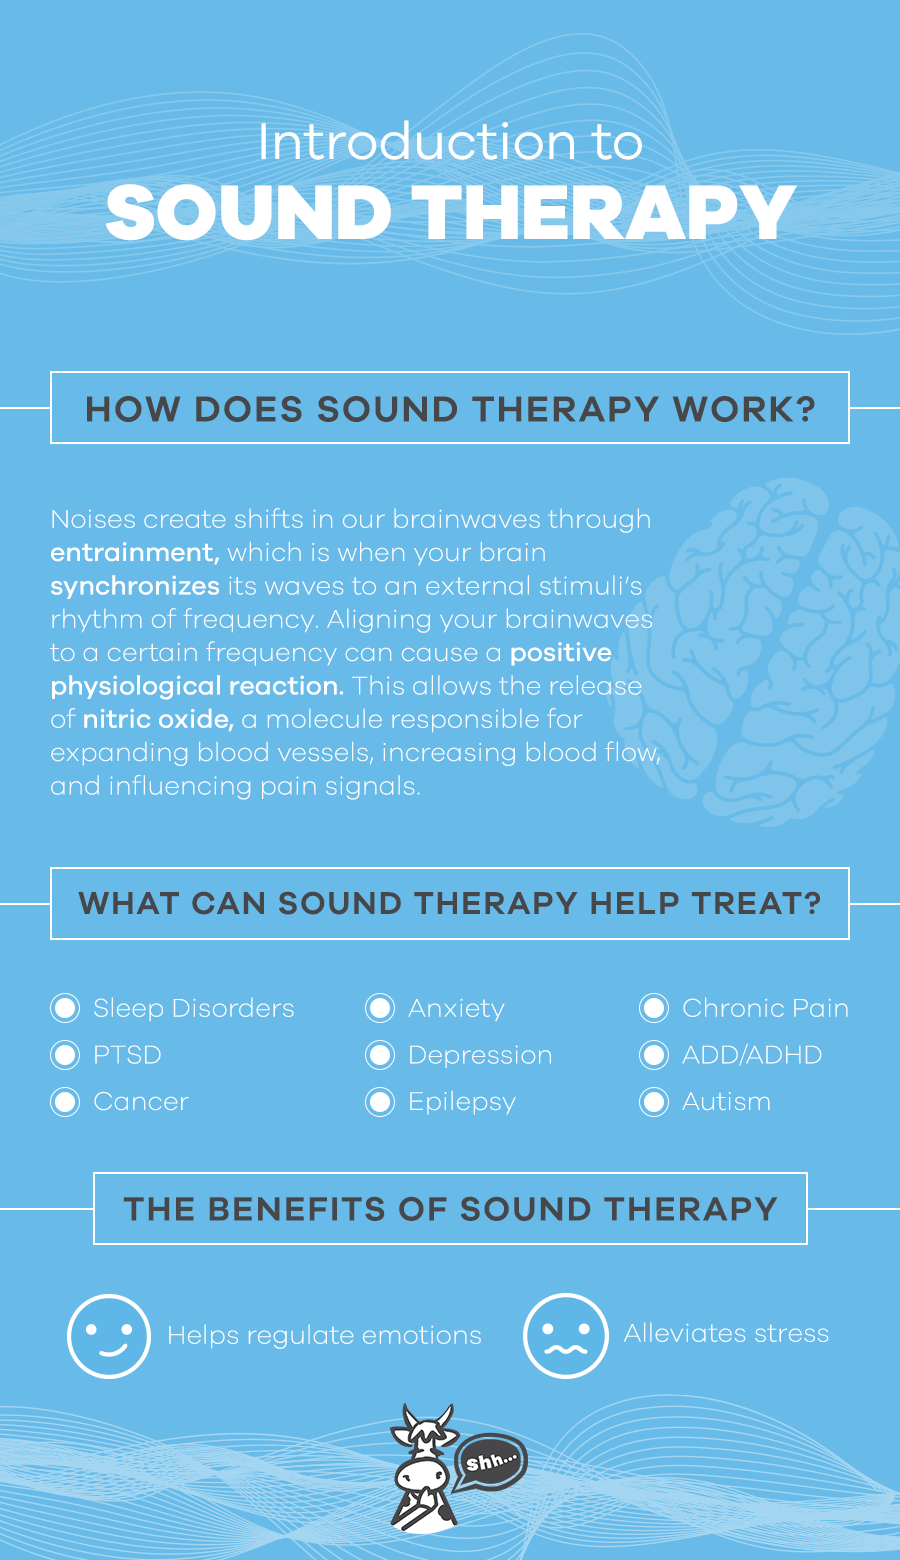 Introduction to Sound Therapy